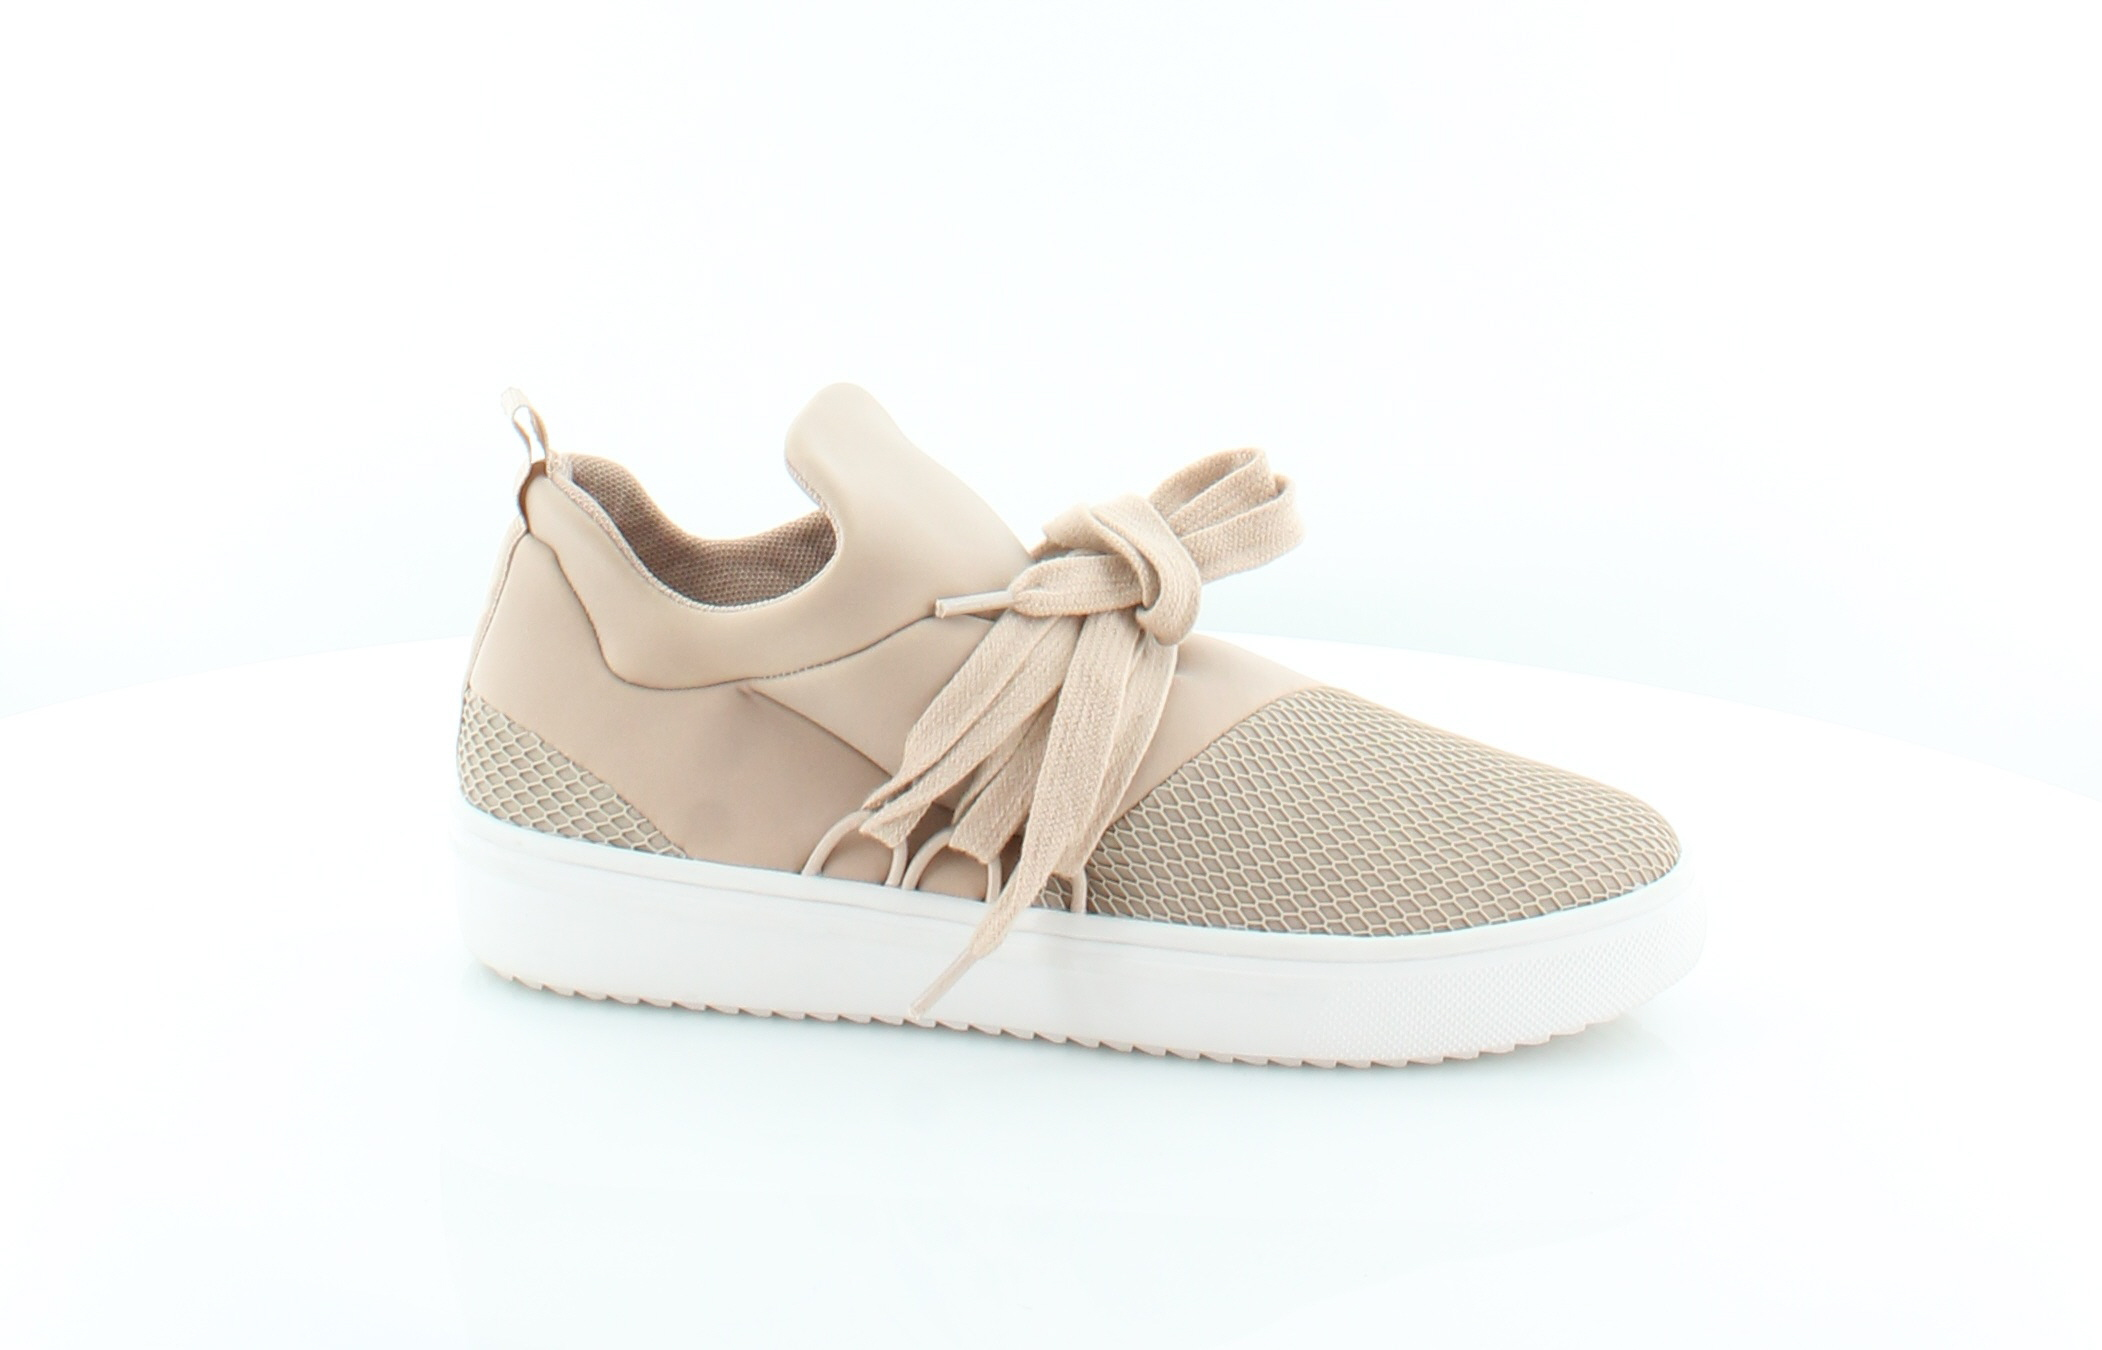 3497fc7d0314f0 Steve Madden Lancer Pink Womens Shoes Size 7.5 M Fashion Sneakers ...